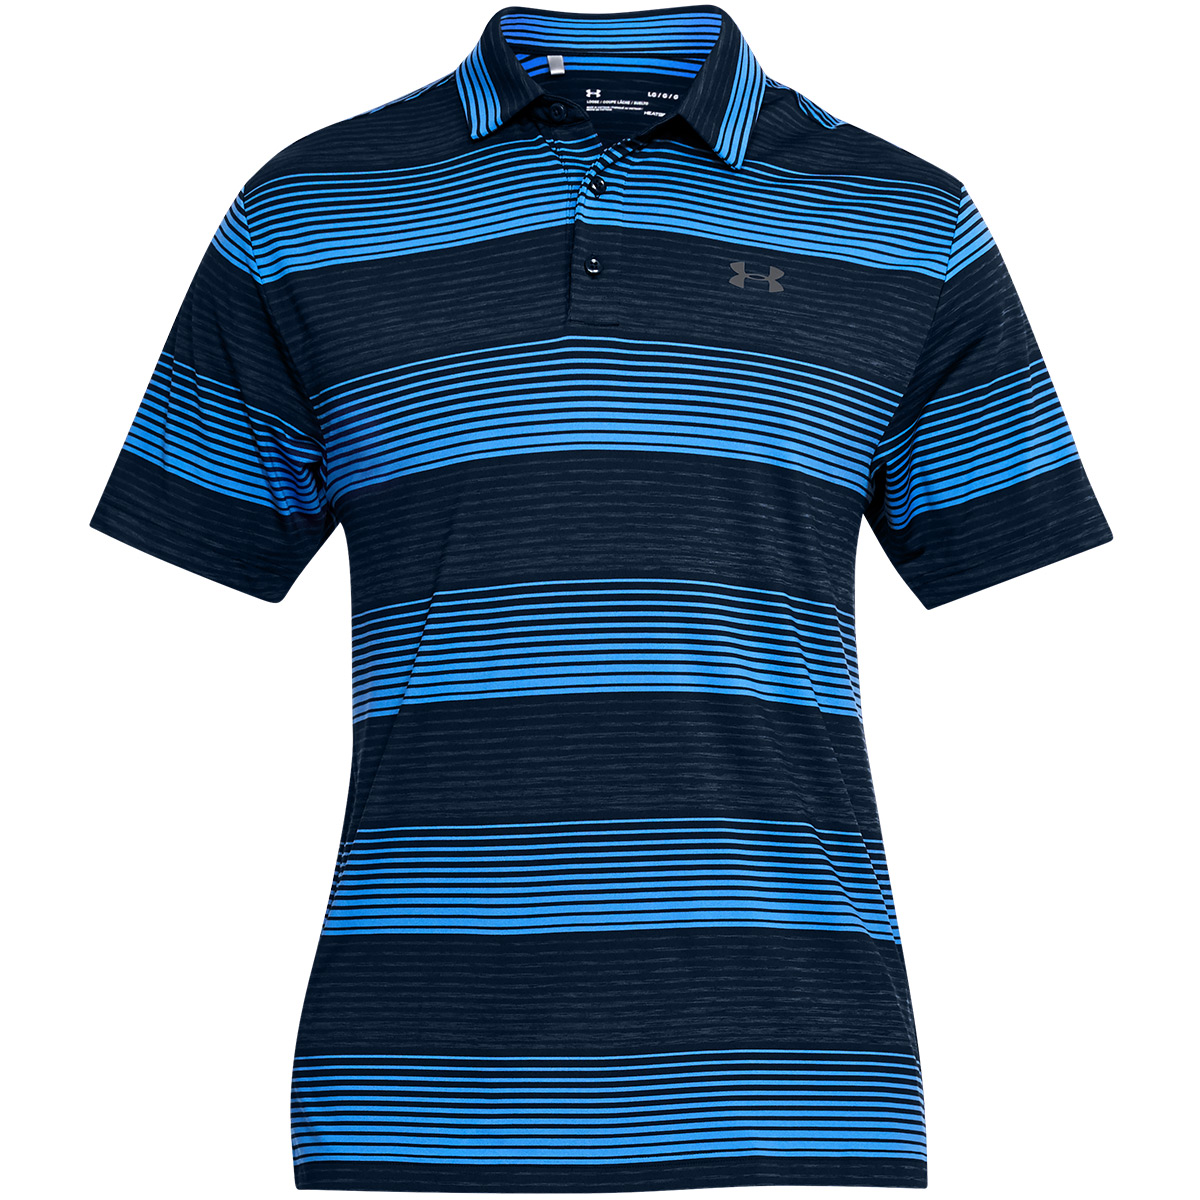 Under-Armour-Mens-UA-Playoff-Performance-Golf-Polo-Shirt-33-OFF-RRP thumbnail 15